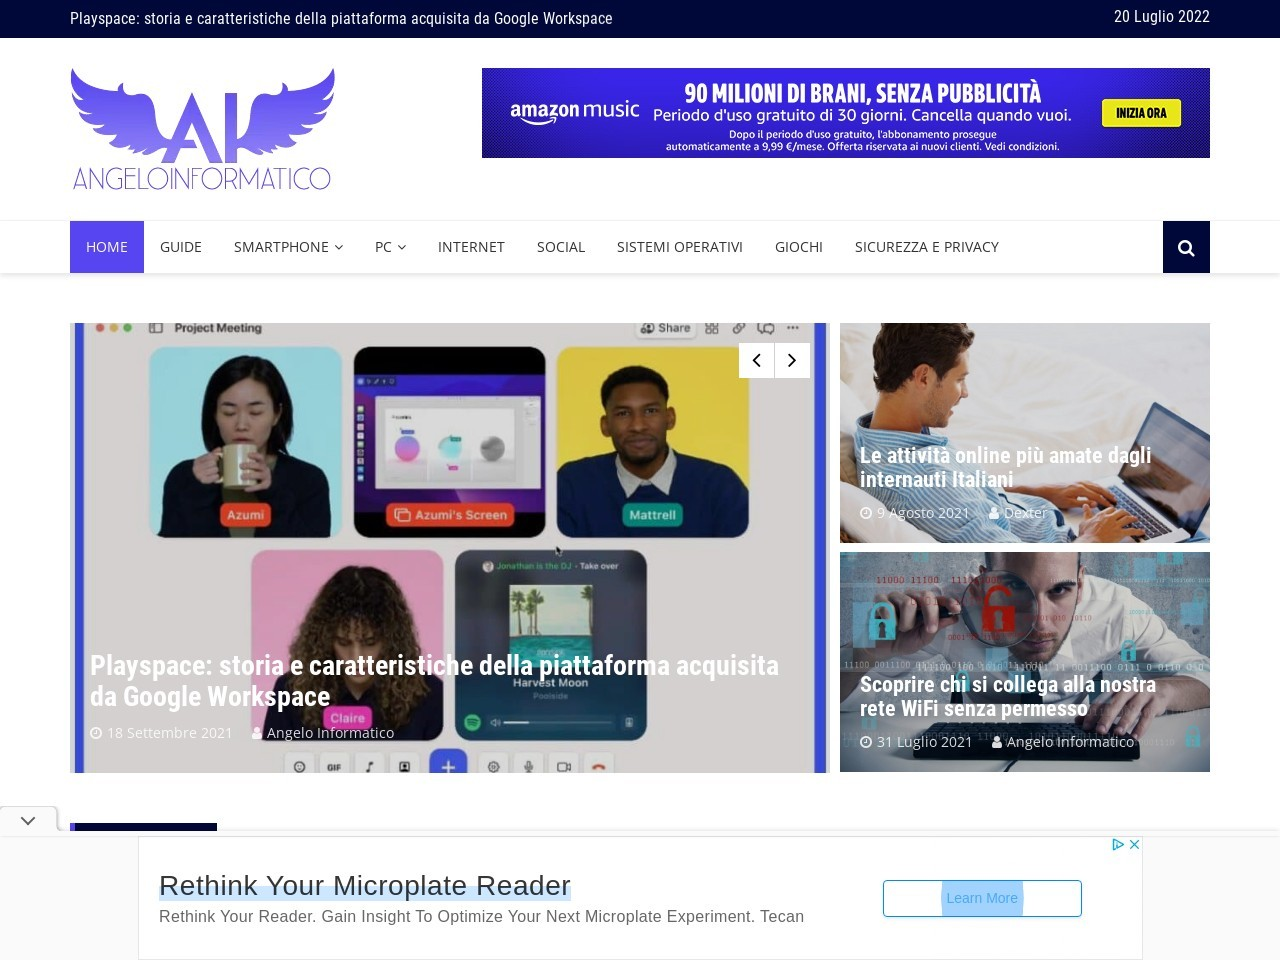 angeloinformatico-net